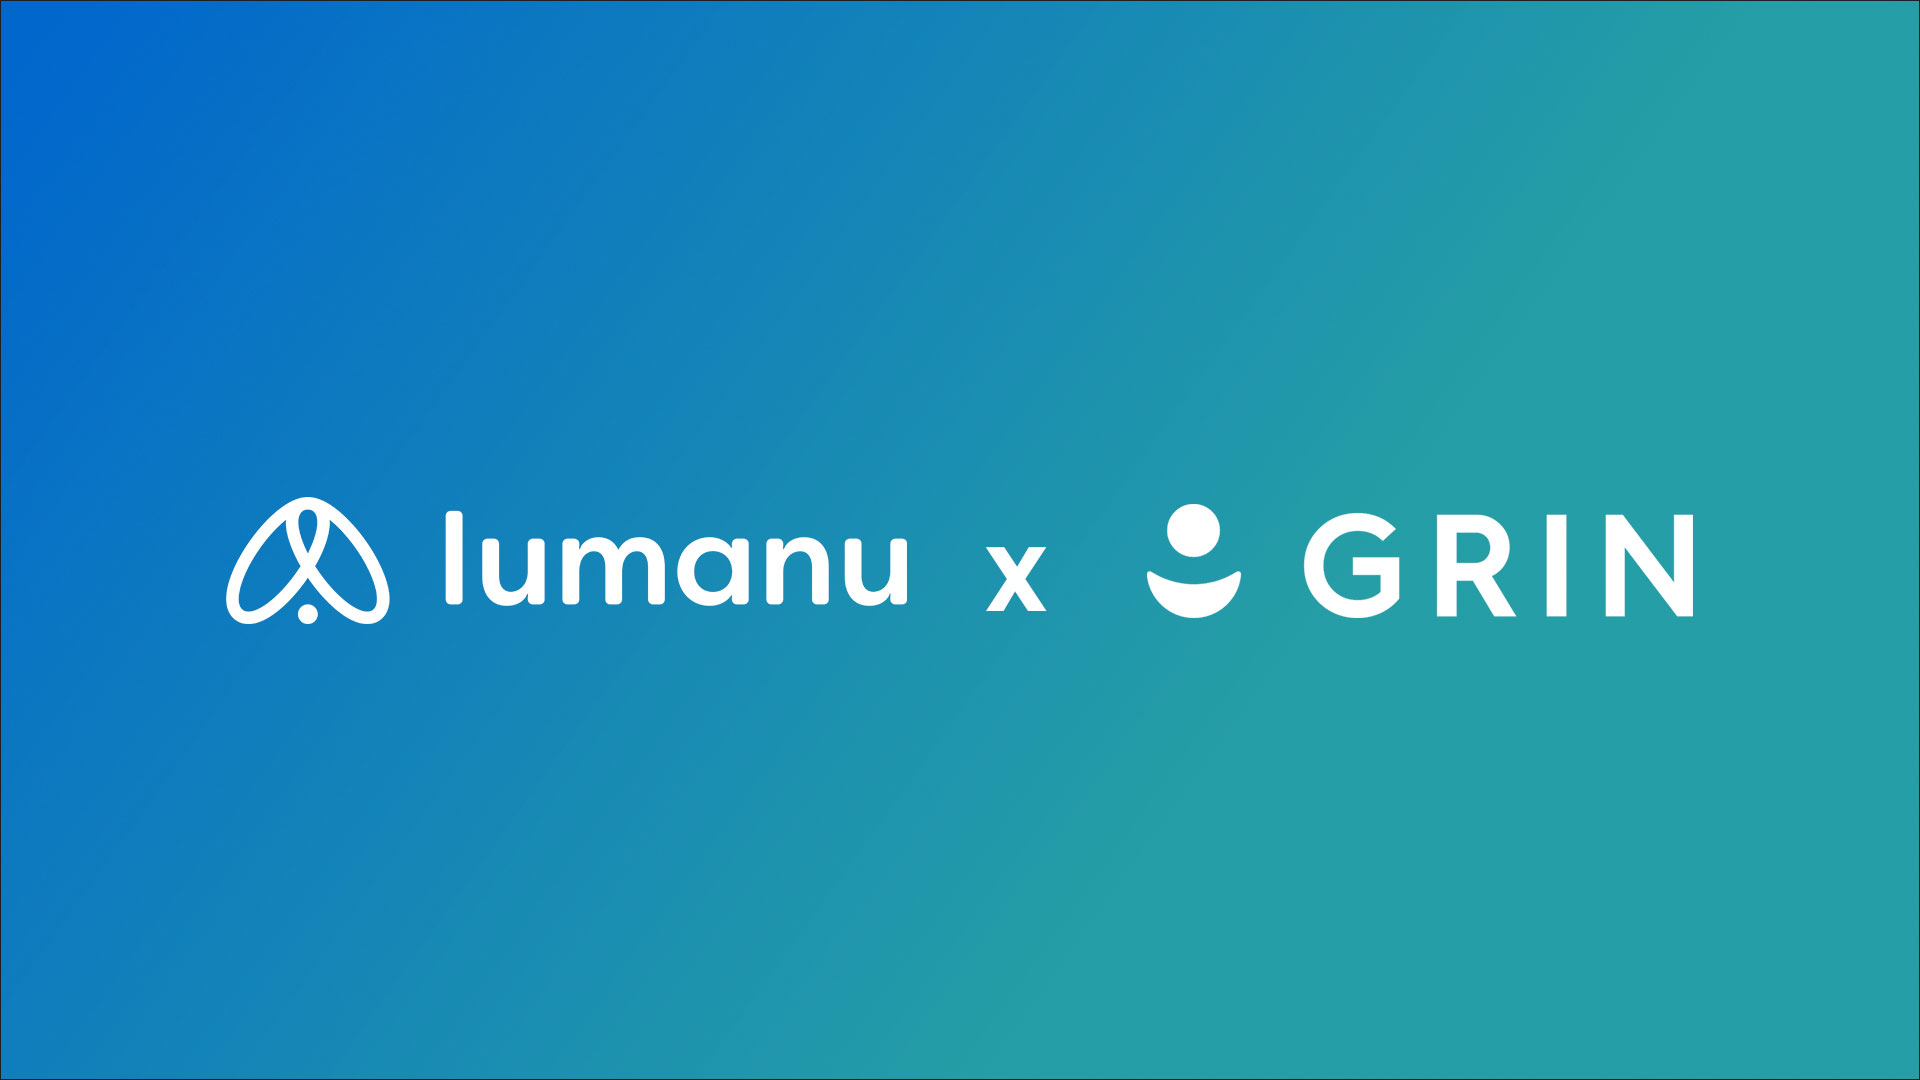 Lumanu announced technical integration with GRIN, catapulting to companies to become the most powerful solution for direct-to-consumer brands to scale influencer marketing.